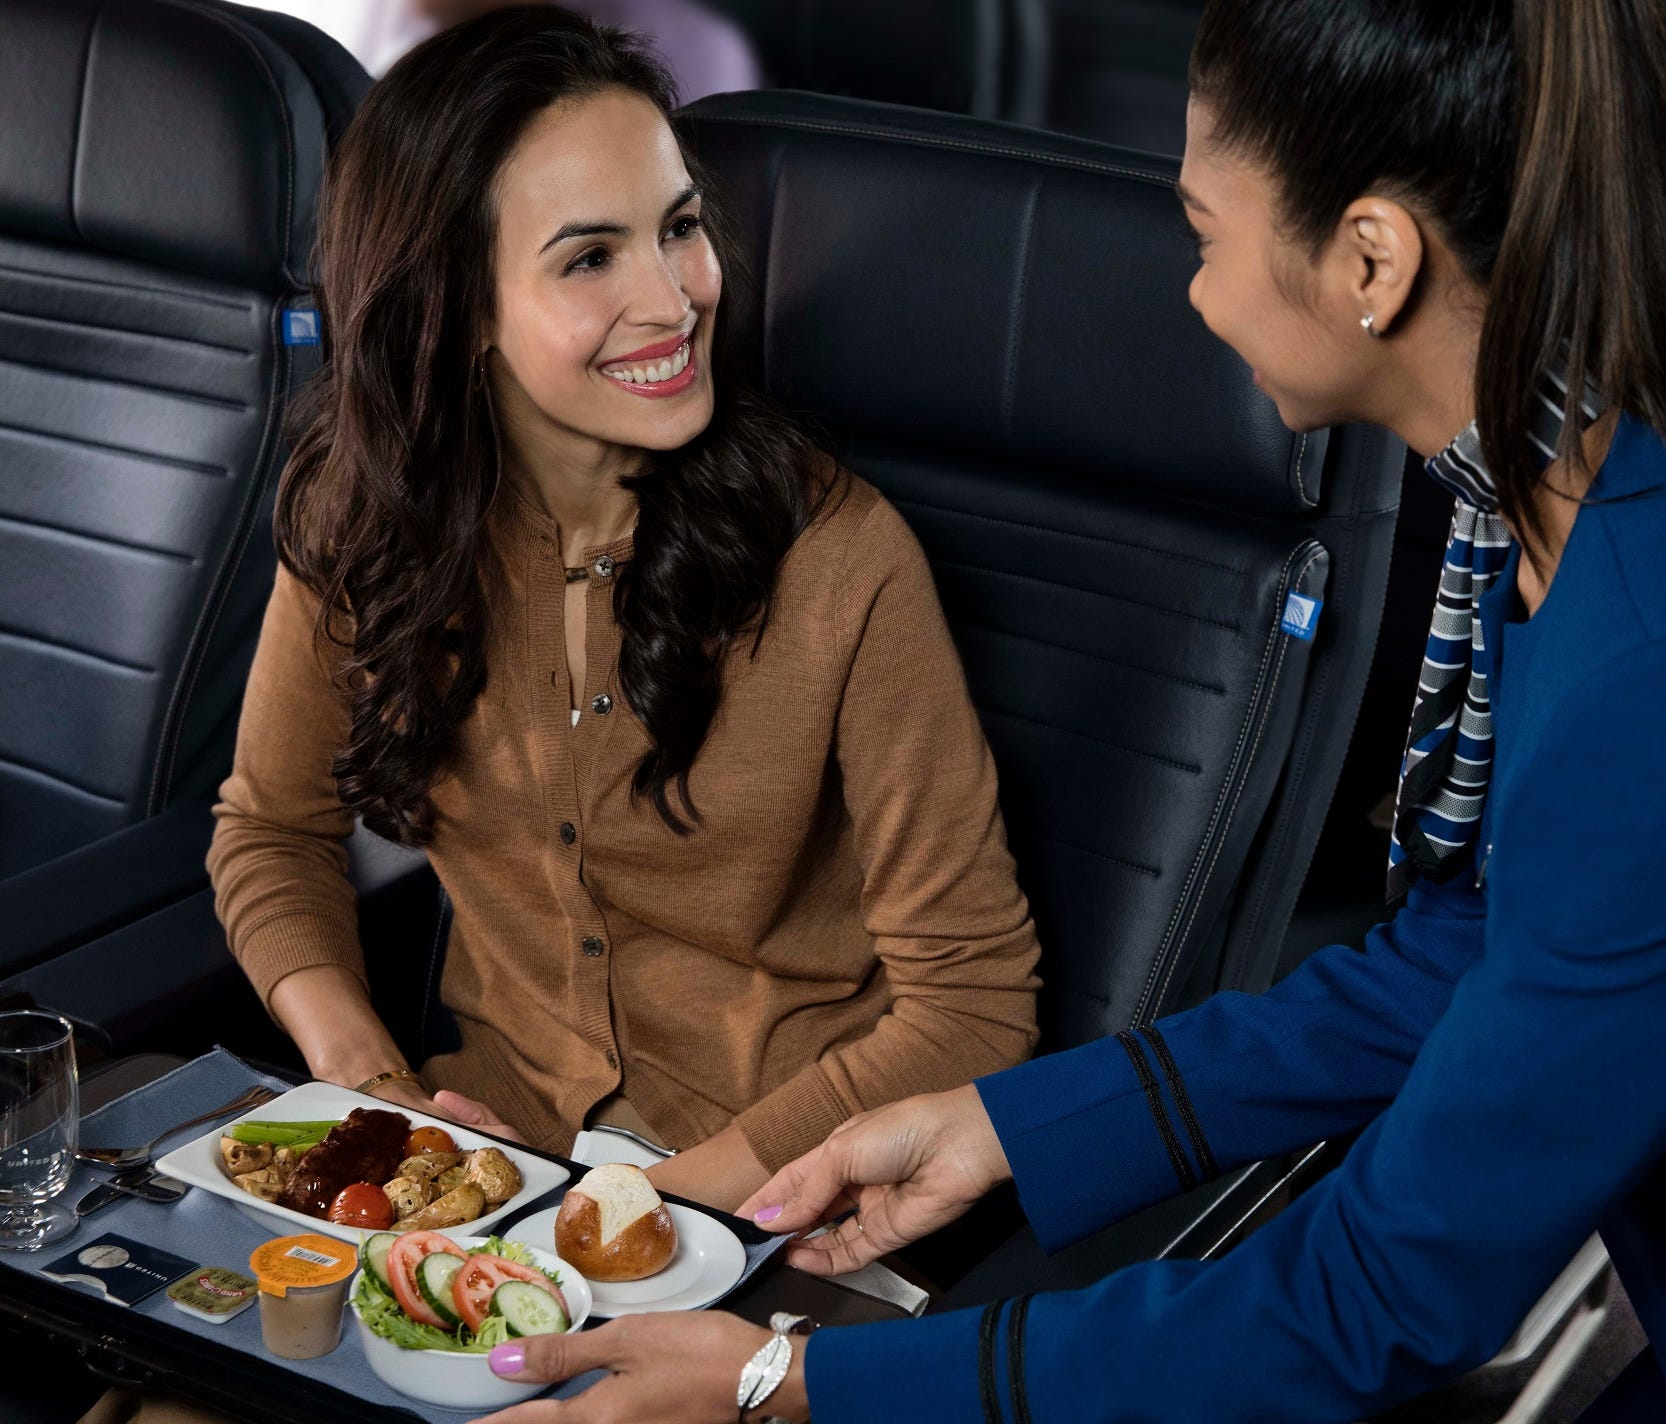 This file photo, provided by United, shows the premium meal service as offered on Latin America routes.